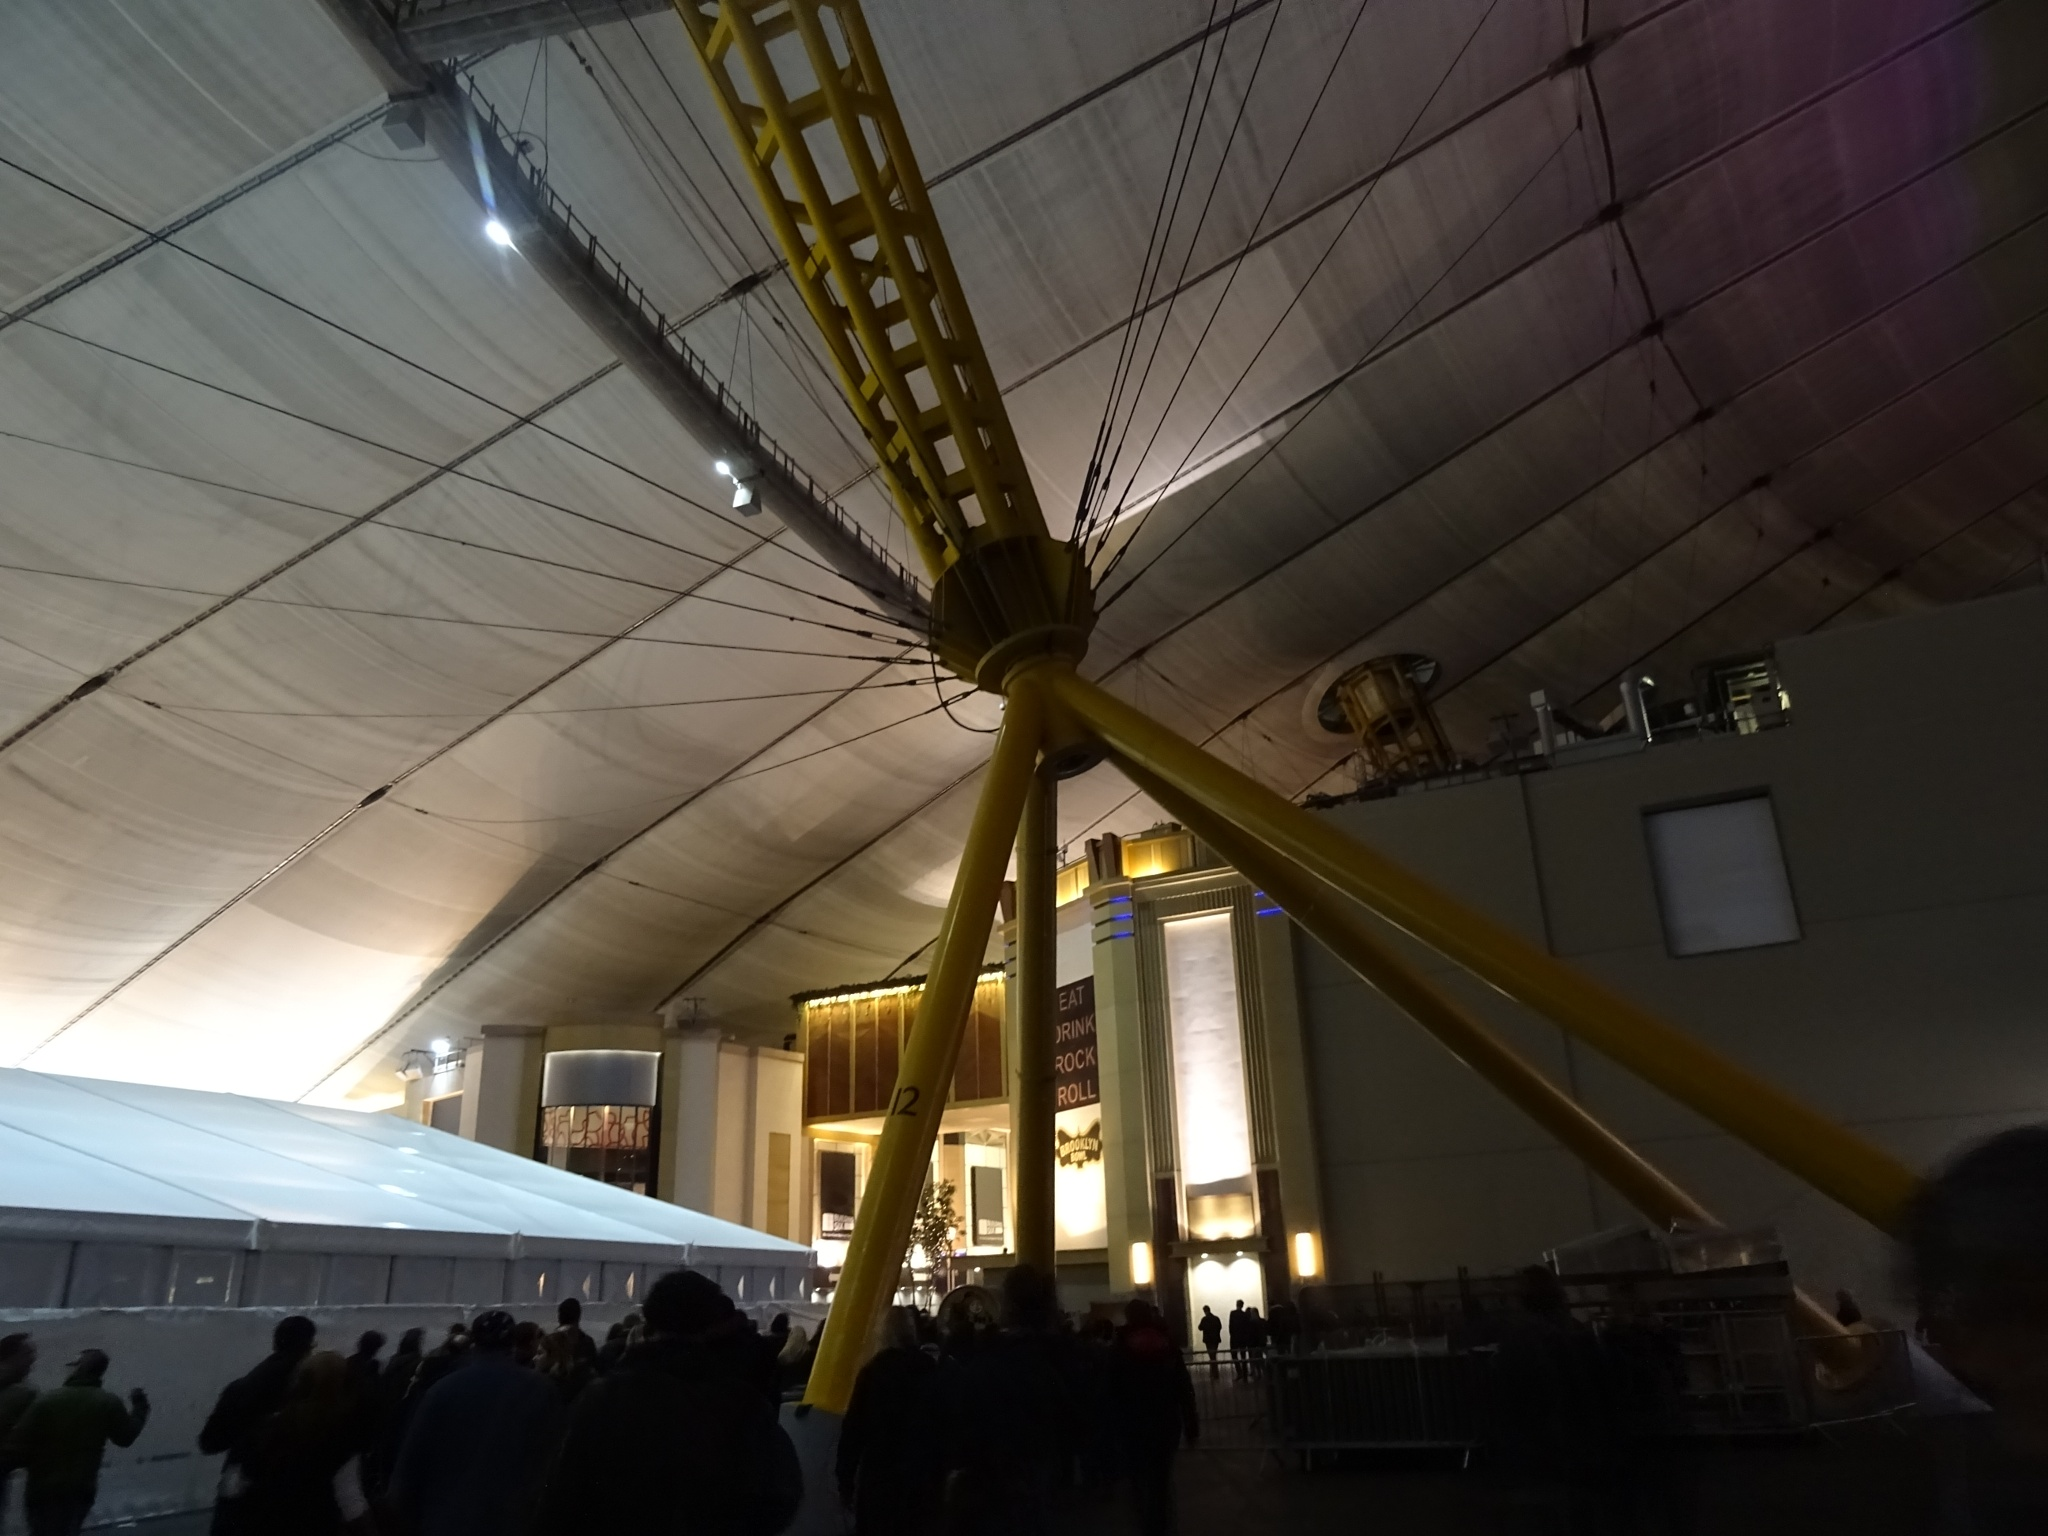 In the Dome by erol.antz